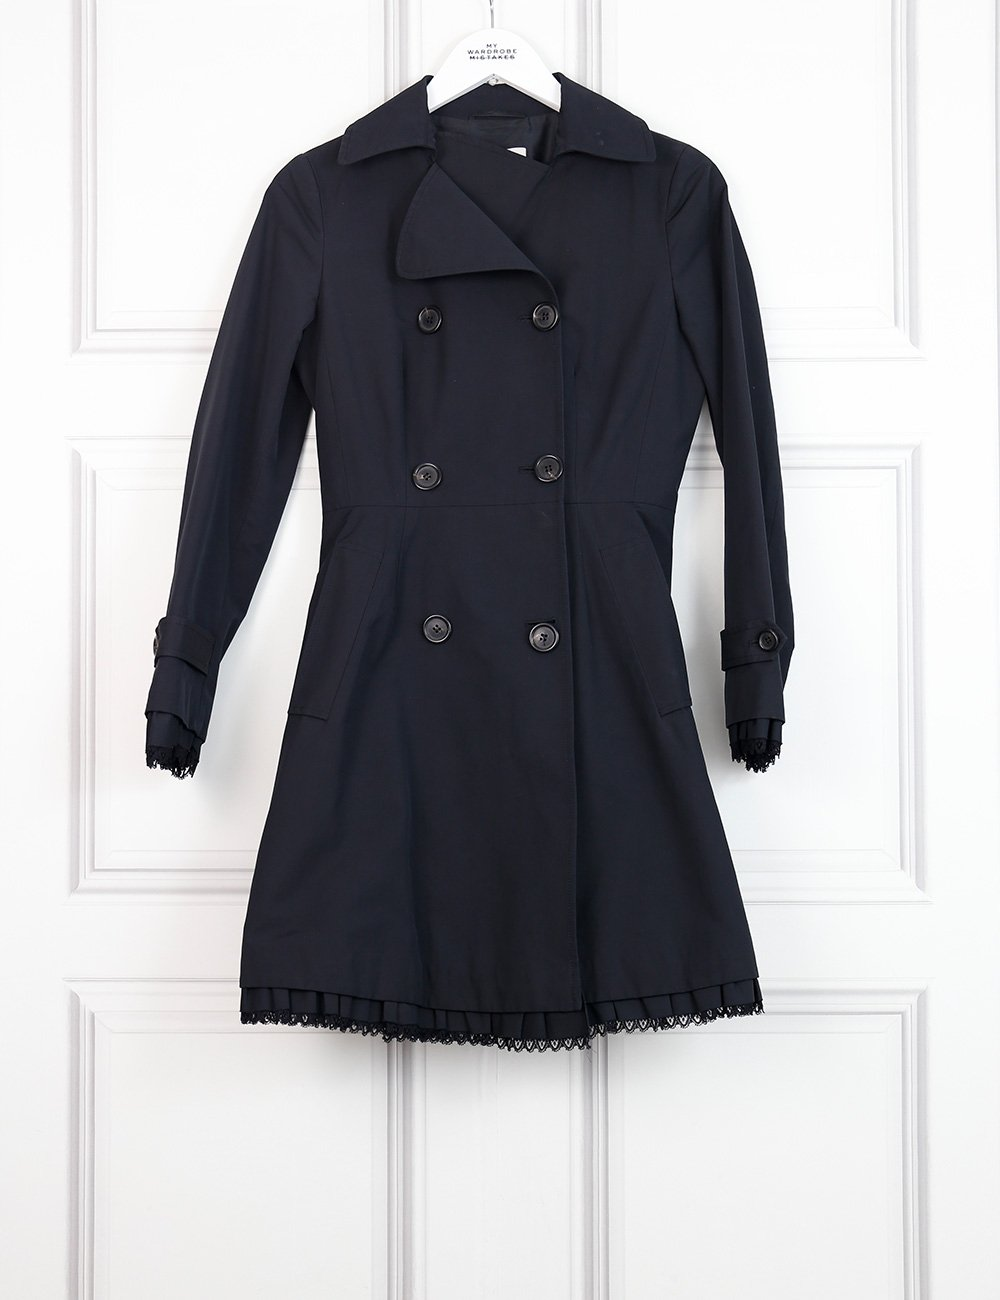 Prada black trench coat with delicate hem 6UK- My Wardrobe Mistakes